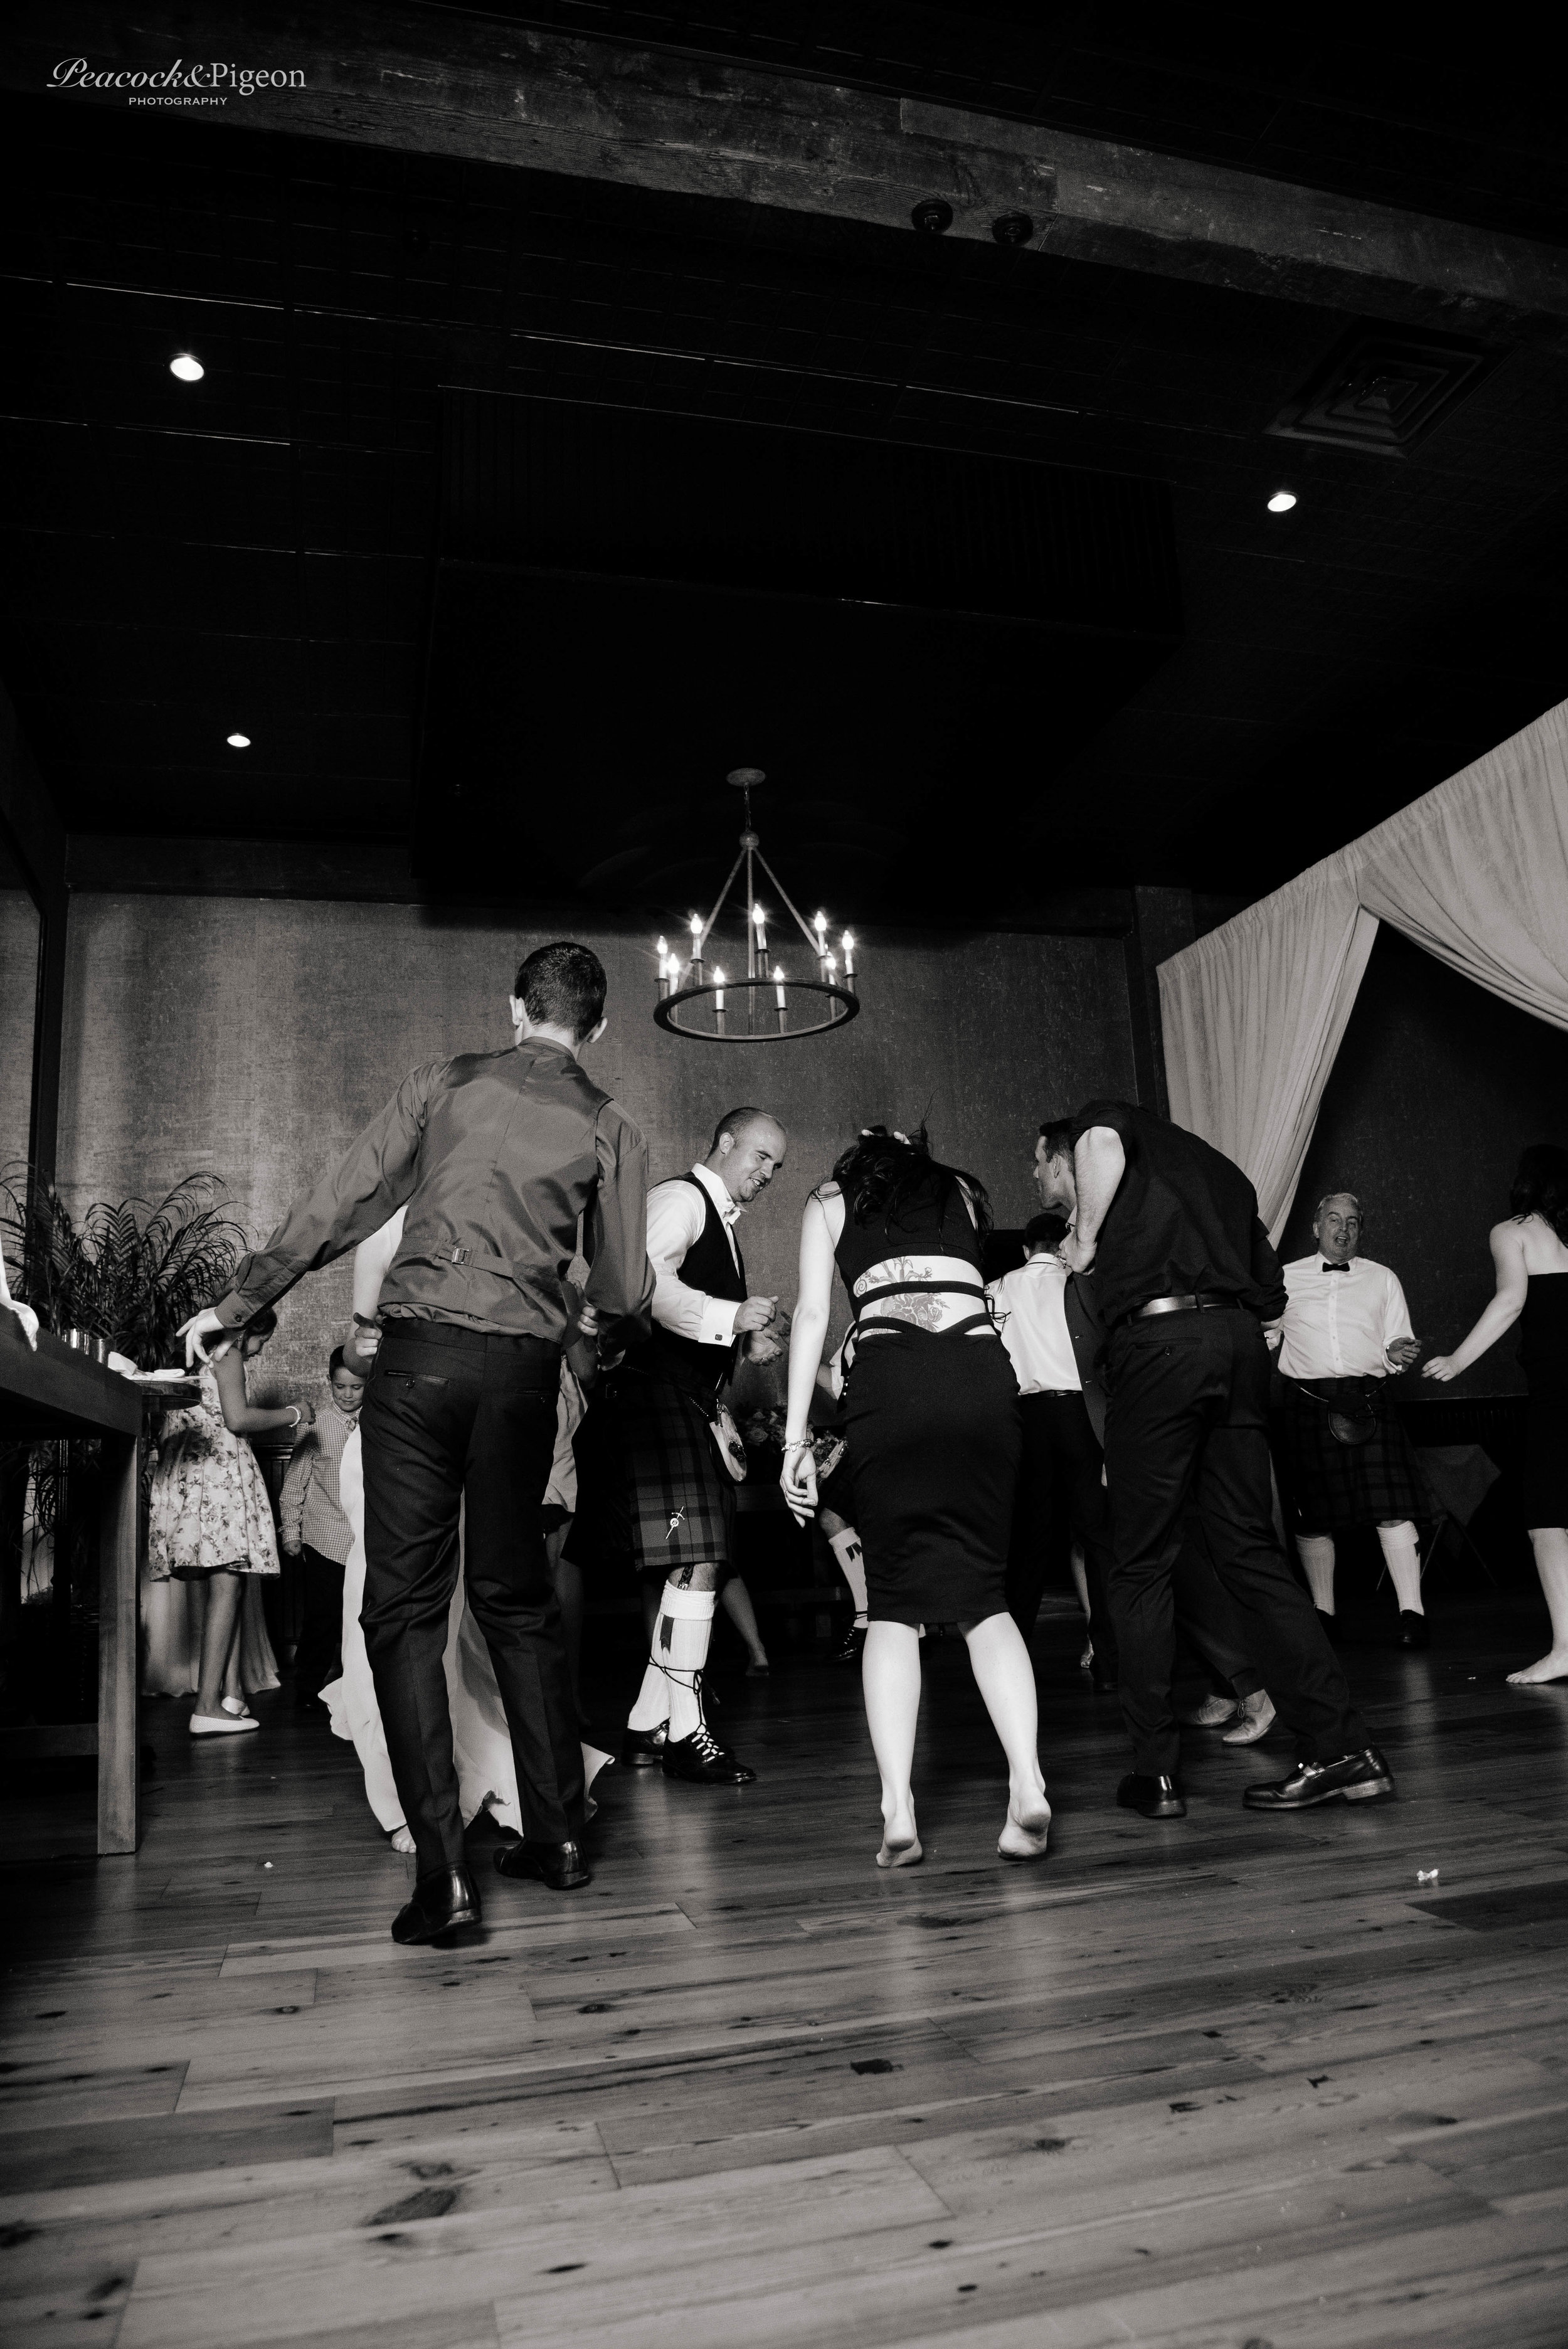 Callum_and_Sara's_Wedding_at_the_Cork_Factory_Hotel_in_Lancaster_Part_Eleven_Dancing_Continued_Black_and_White_Watermarked-46.jpg